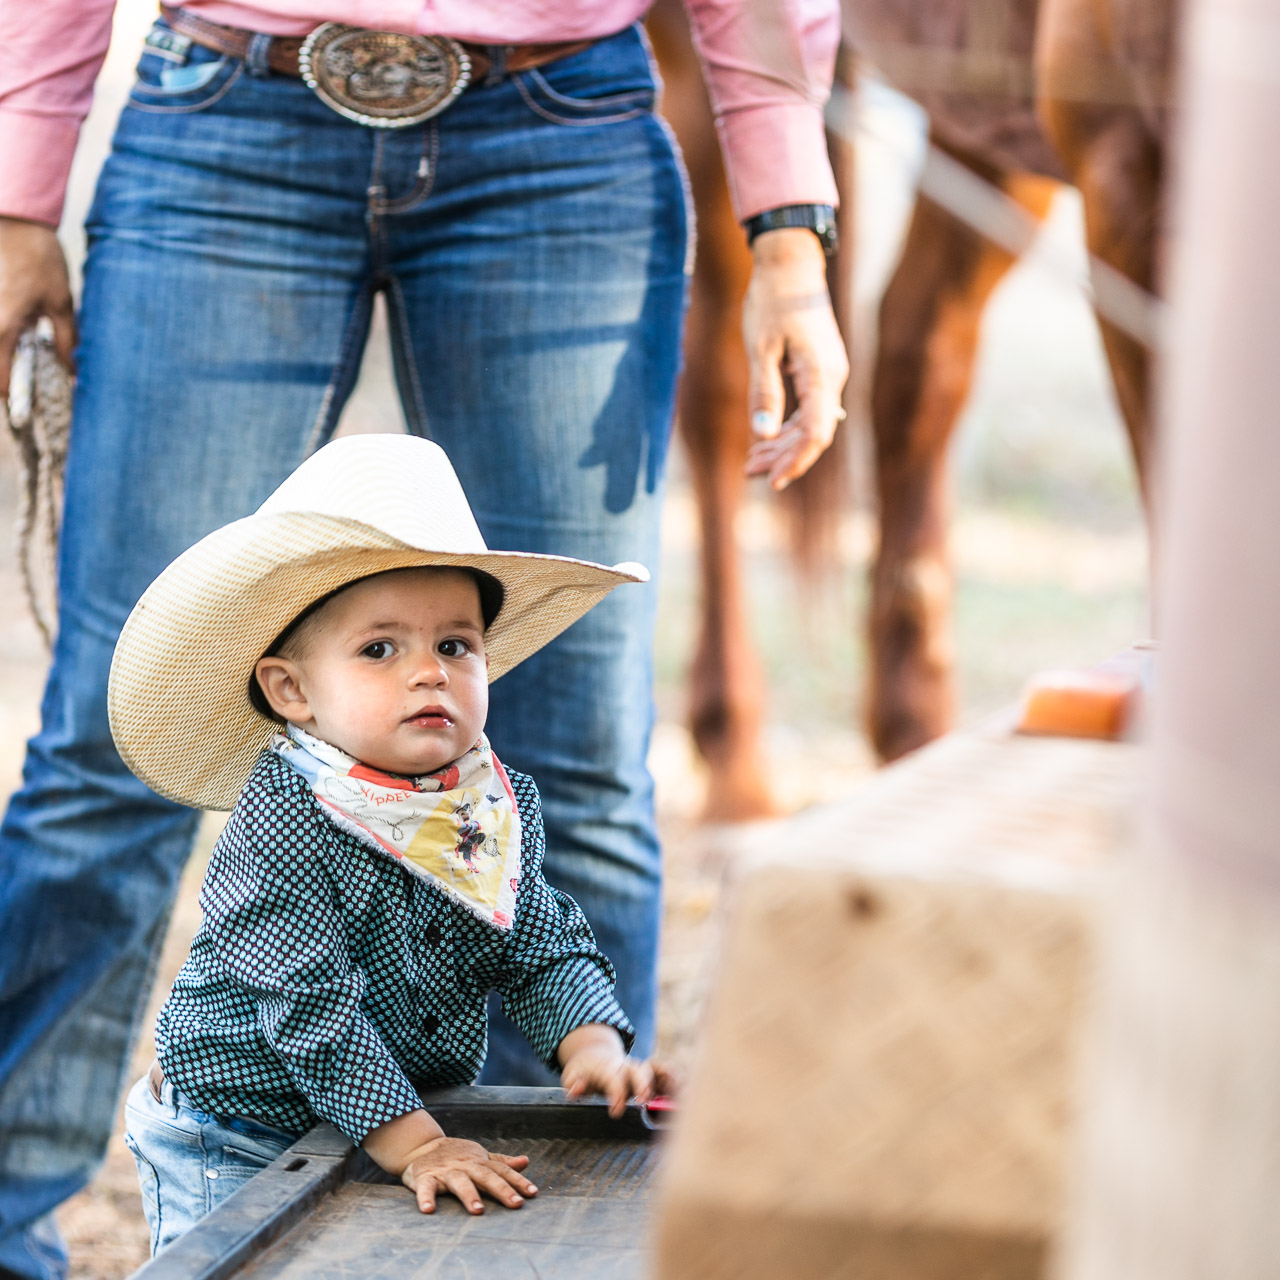 Baby dressed as a cowboy with his mum's legs and horse's legs behind him. Blue jeans and a big buckle.